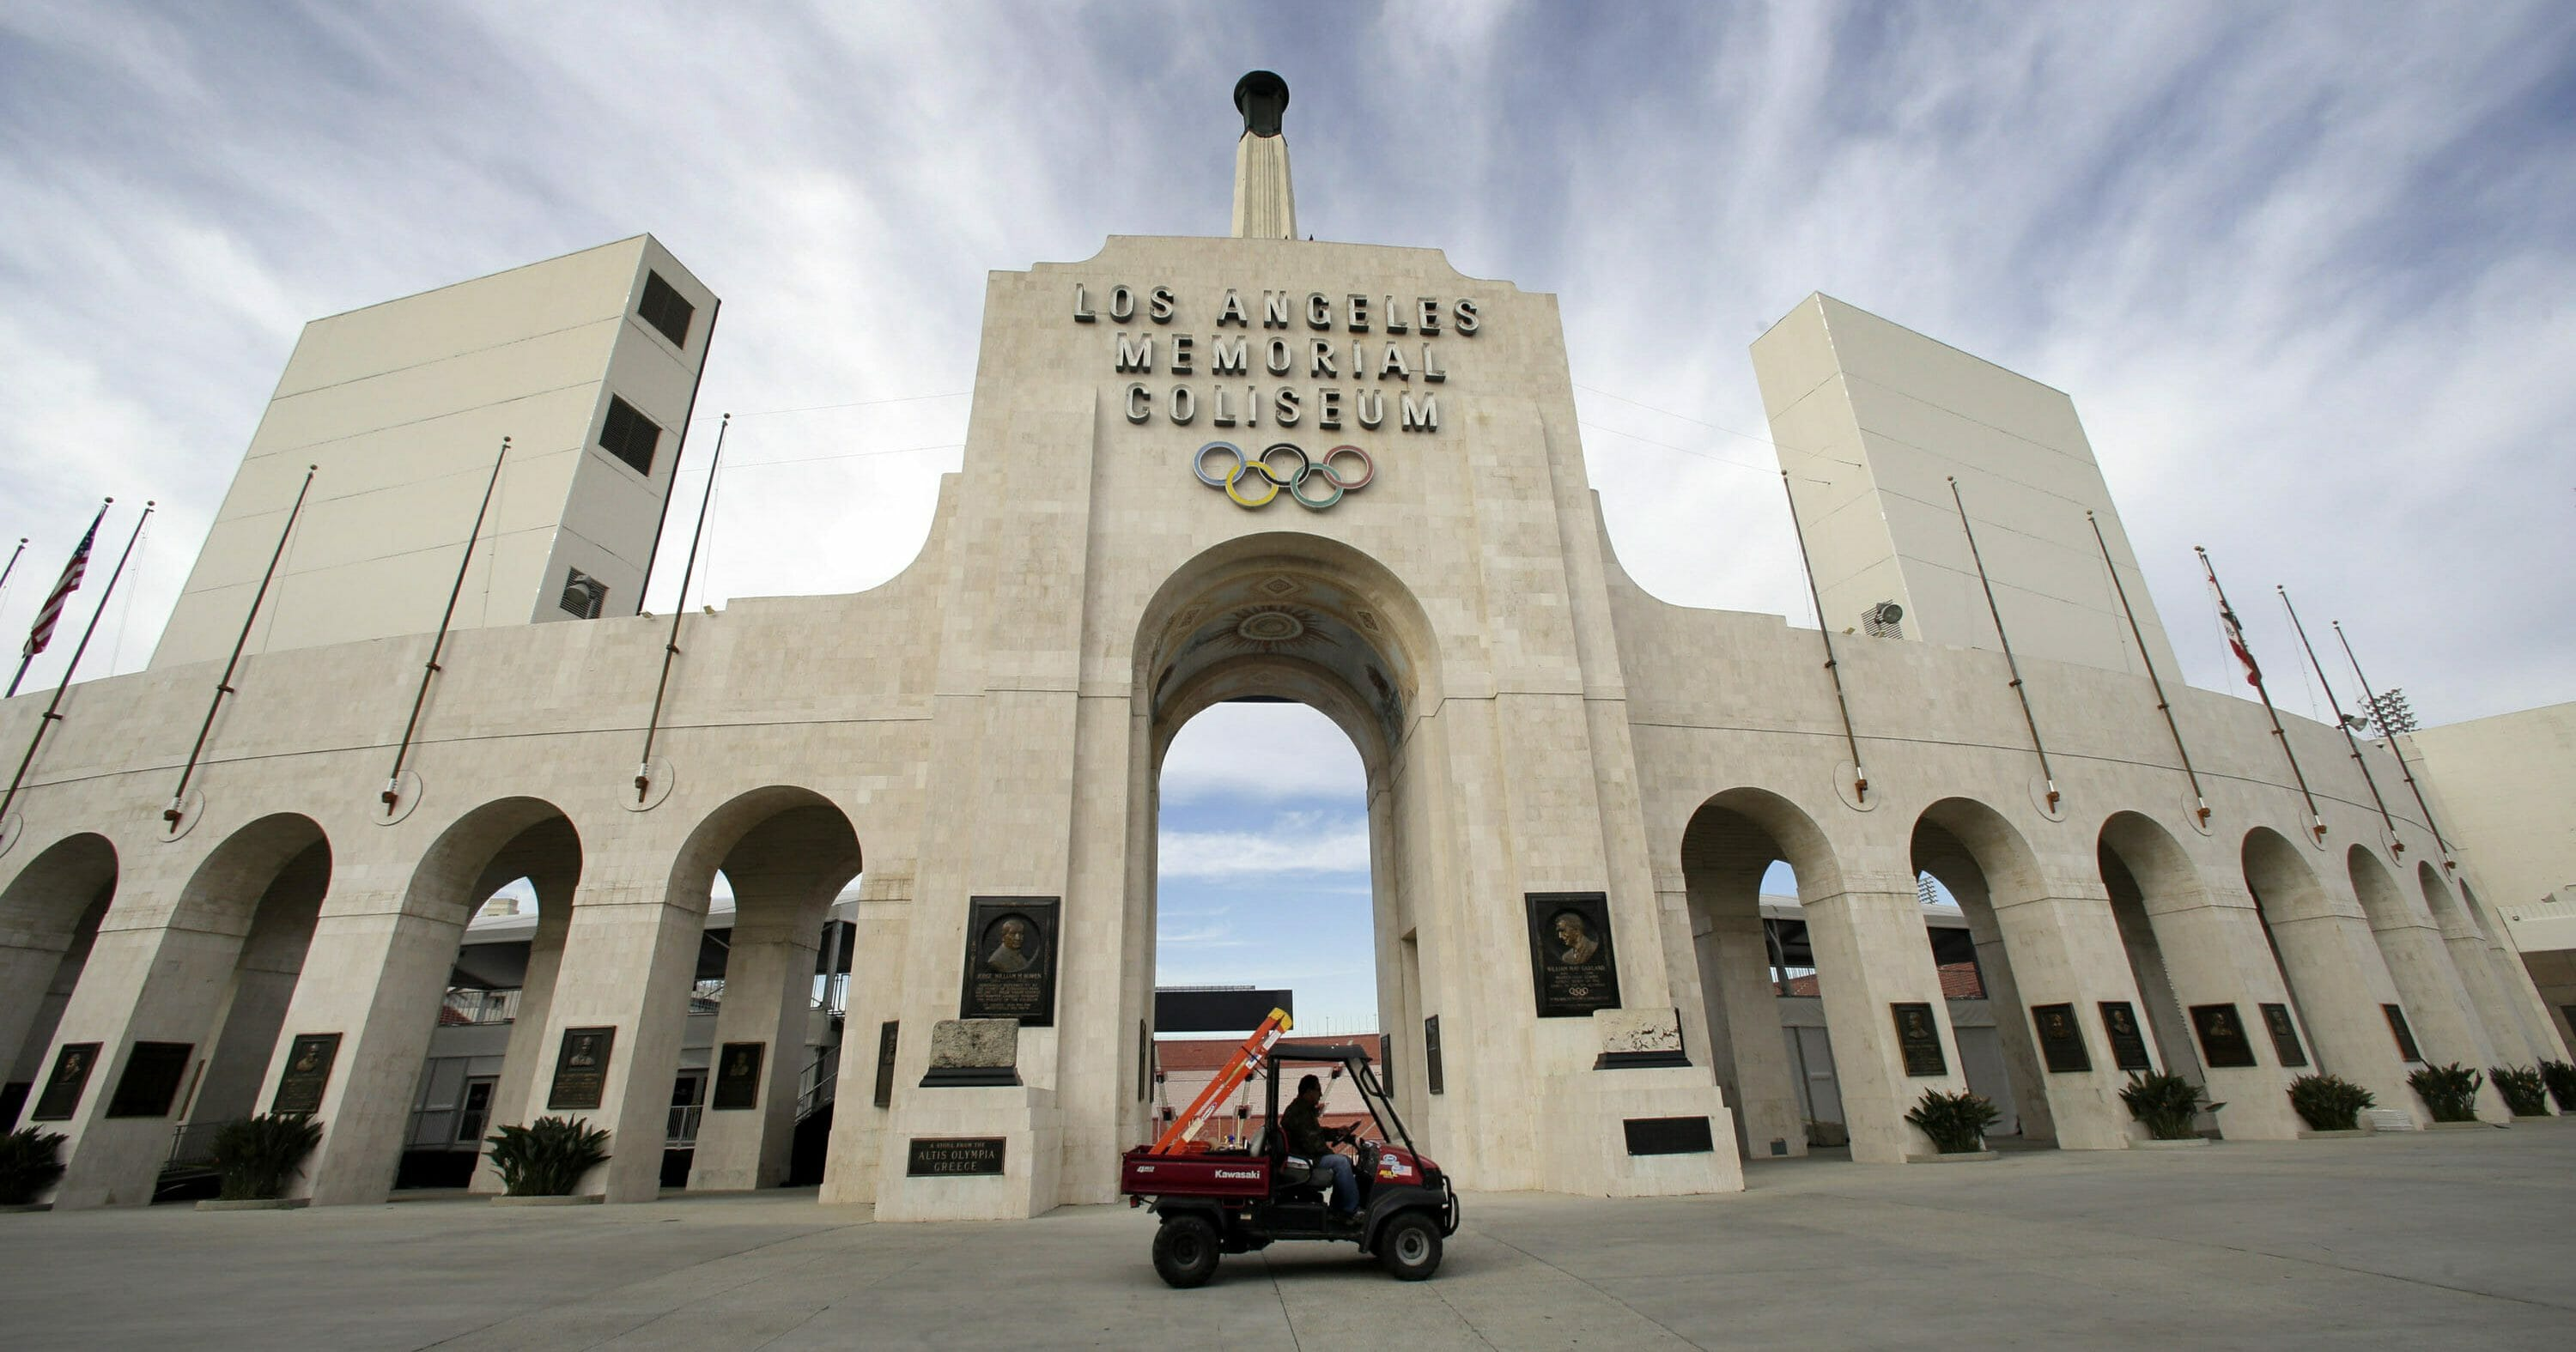 The peristyle of the Los Angeles Memorial Coliseum in Los Angeles is seen Jan. 13, 2016.